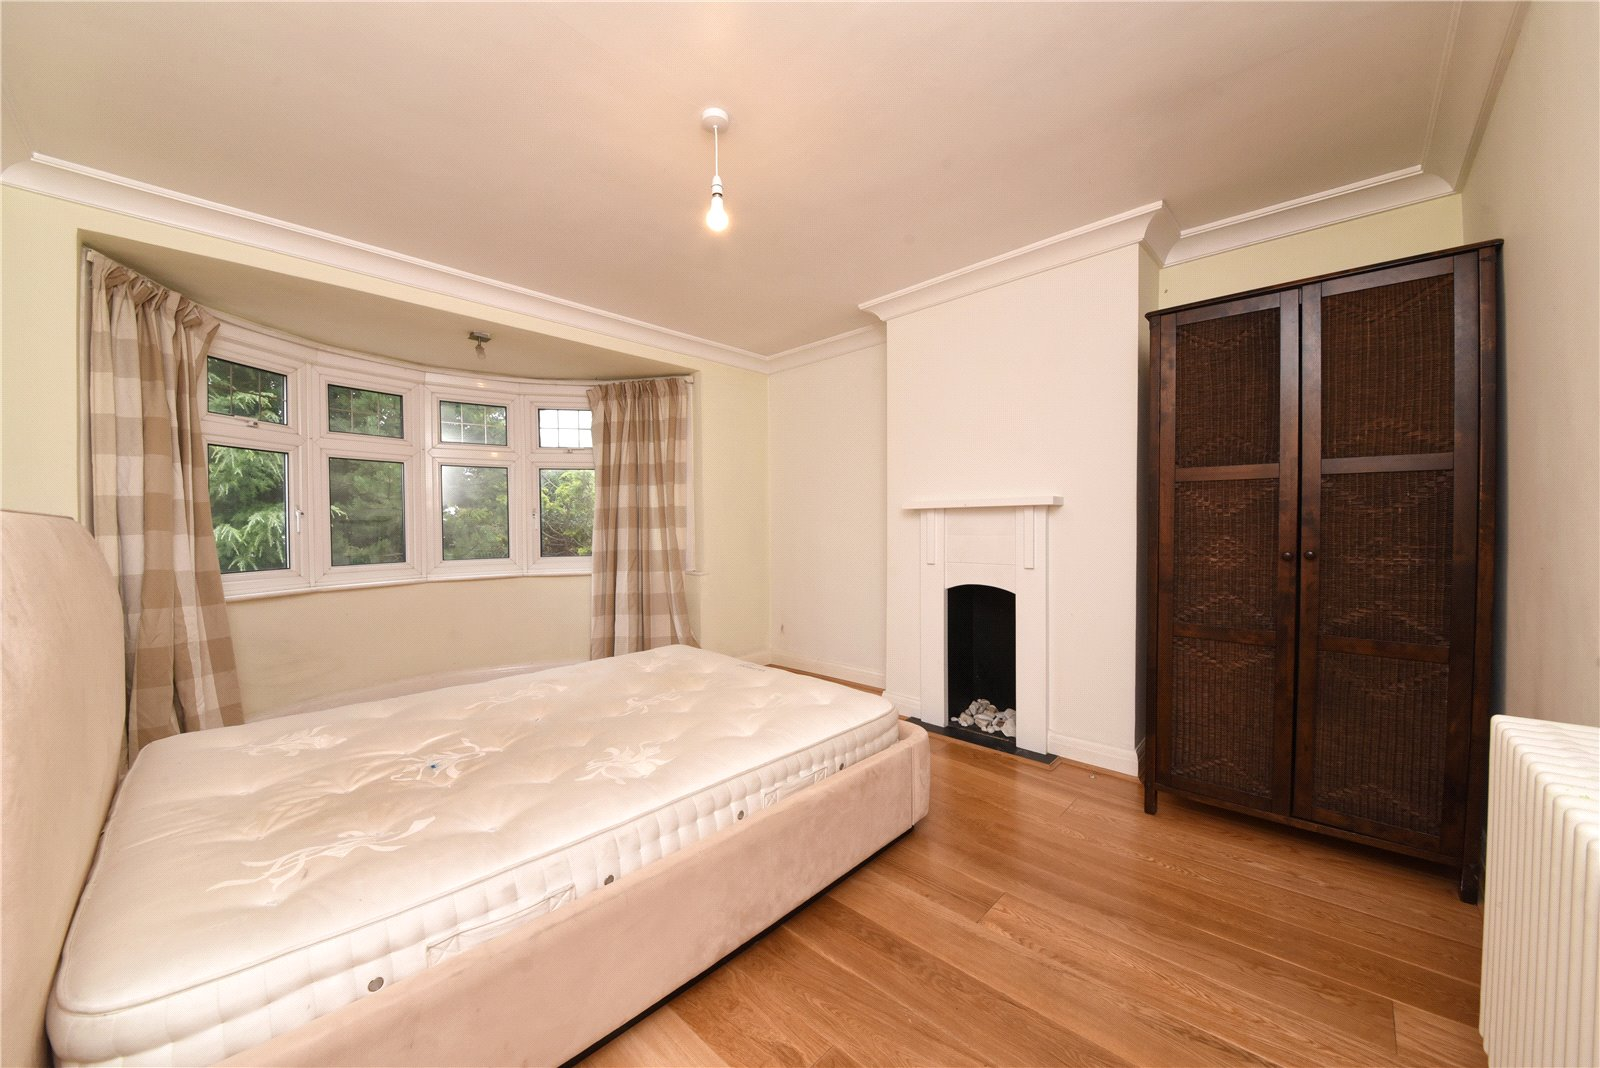 4 bed house to rent in Longland Drive, Totteridge  - Property Image 9